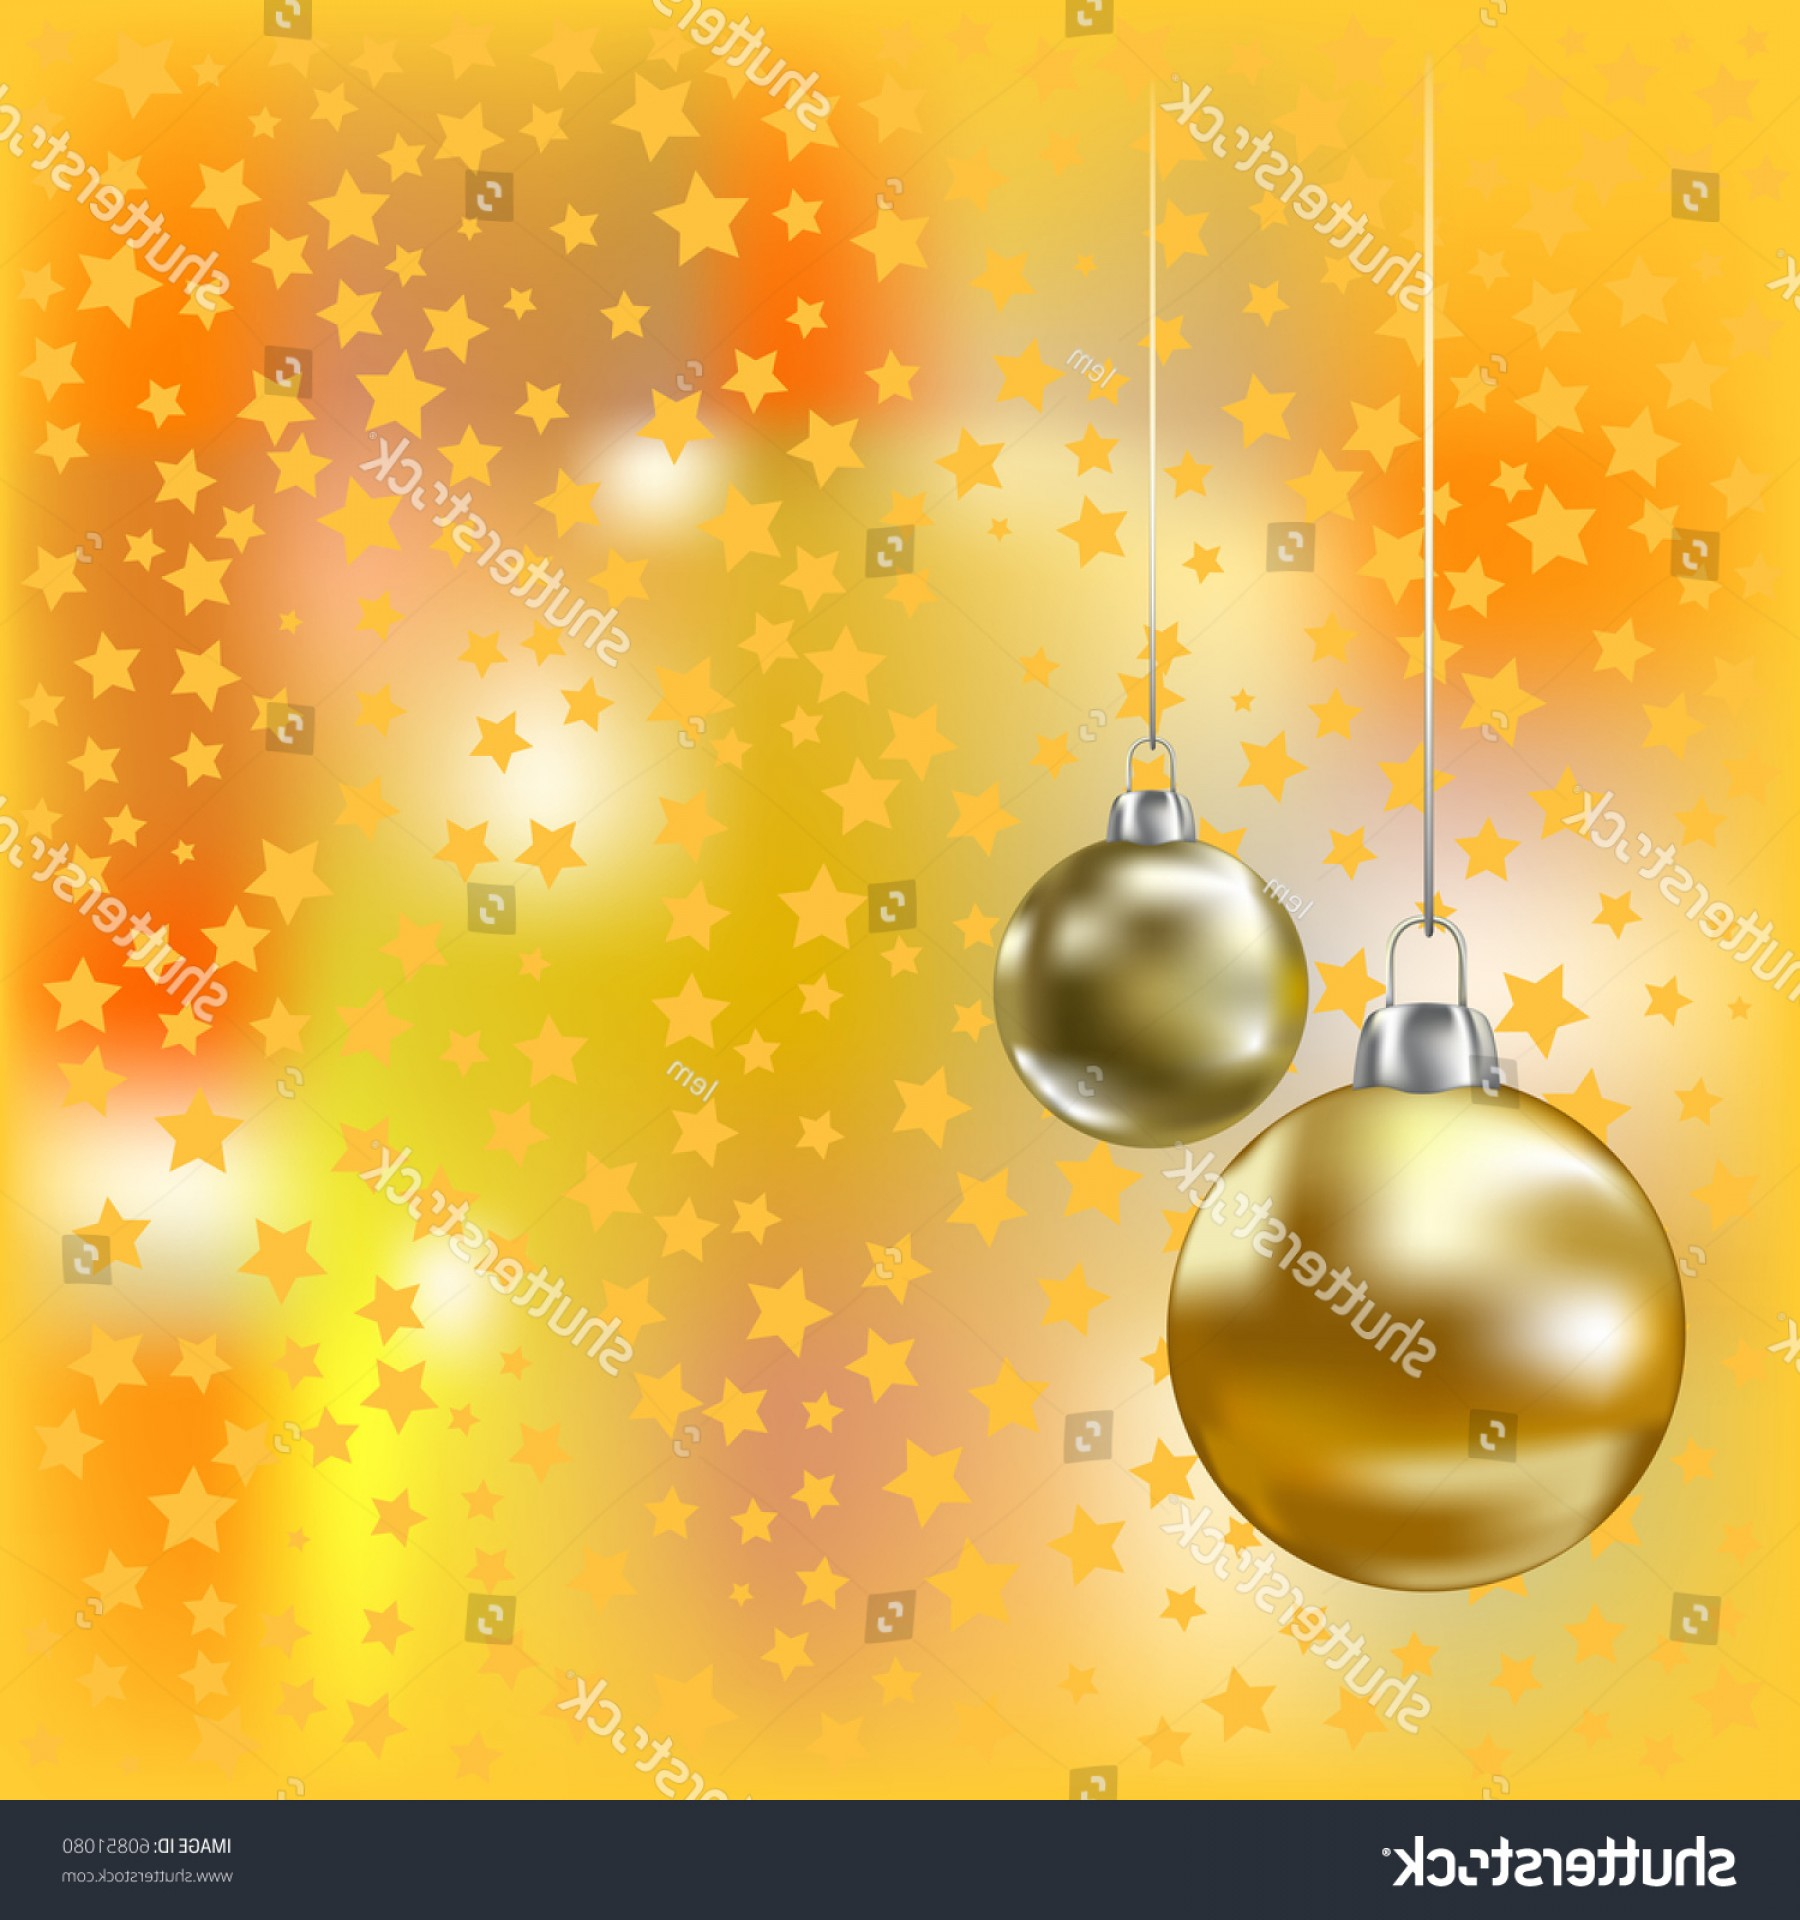 Stars Yellow Christmas Vector: Christmas Golden Balls Stars Yellow Vector